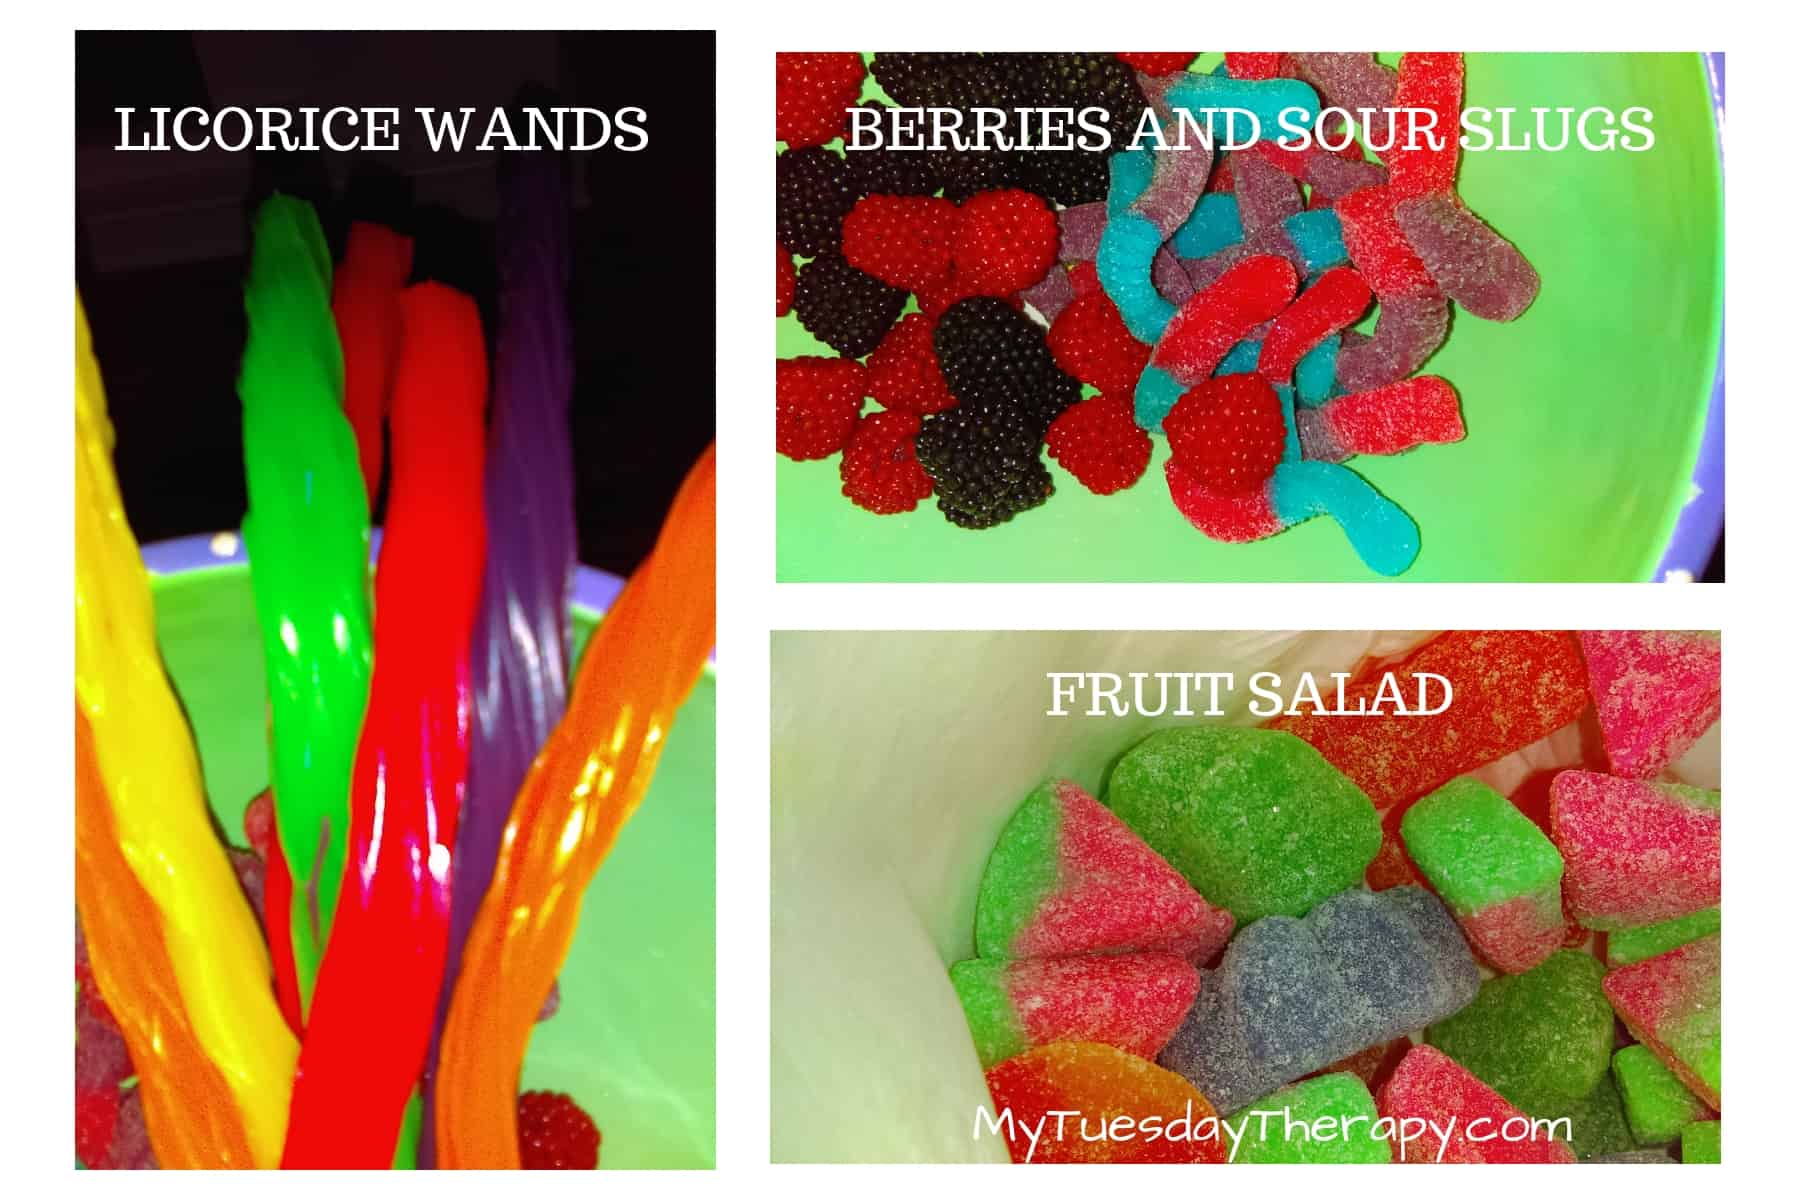 Harry Potter Party Food. Licorice Wands. Berries and Sour Slugs, Fruit Salad